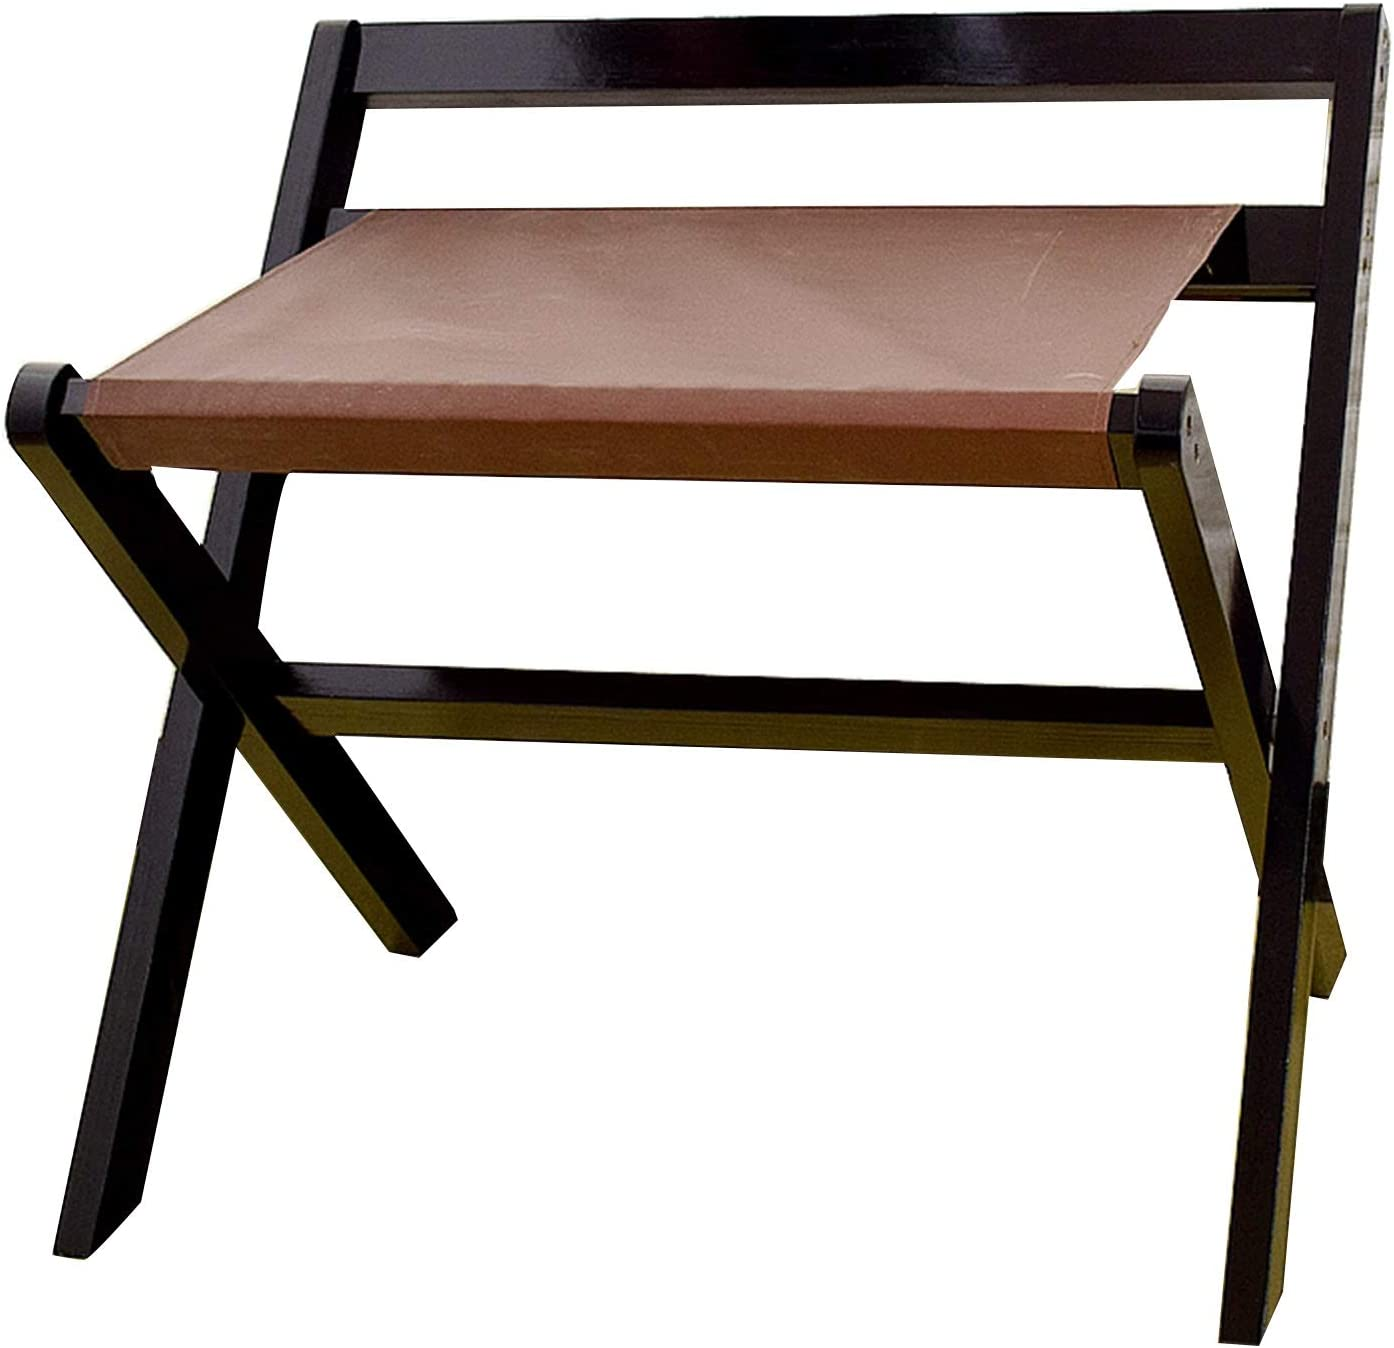 BAIYING Luggage Rack Wooden Special sale item Shelf Backr Popular products Durable Sturdy with and